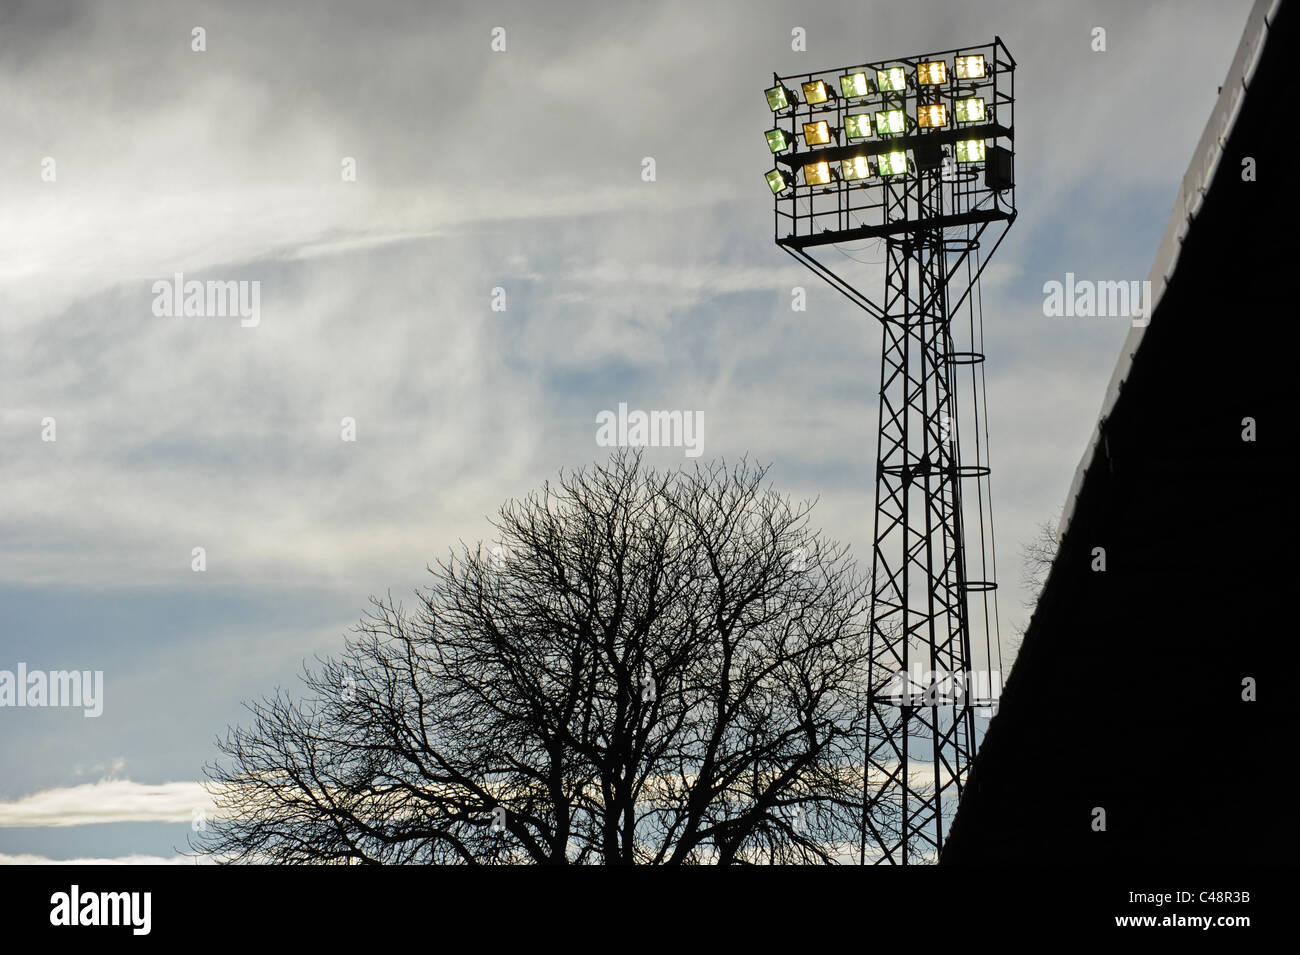 Floodlights at a Sports Ground - Stock Image